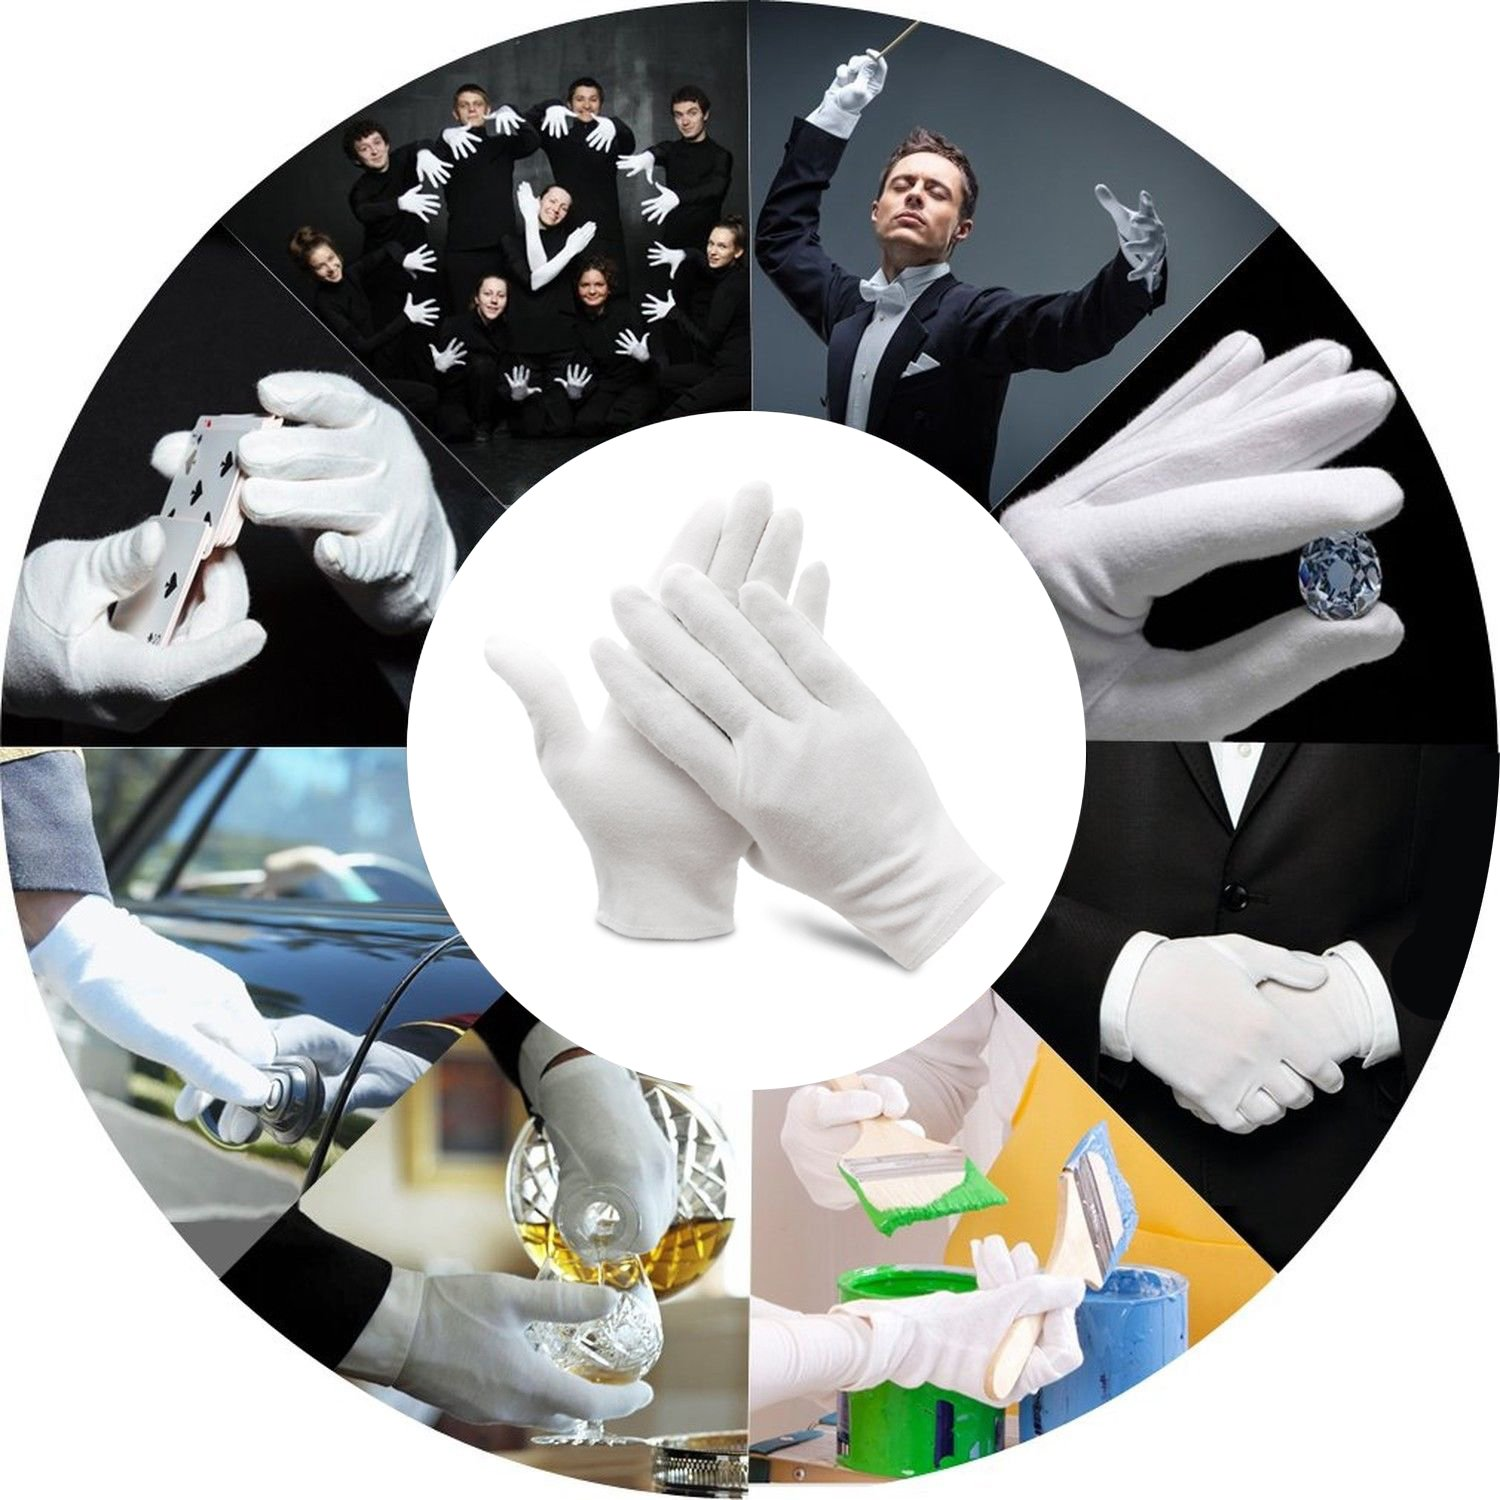 Bestgle White Gloves, 15 Pairs Soft Cotton Stretchable Work Glove for Coin Jewelry Silver Inspection, Doorman, Fire or Police Dress Glove Liner Uniform (Large) by Bestgle (Image #6)